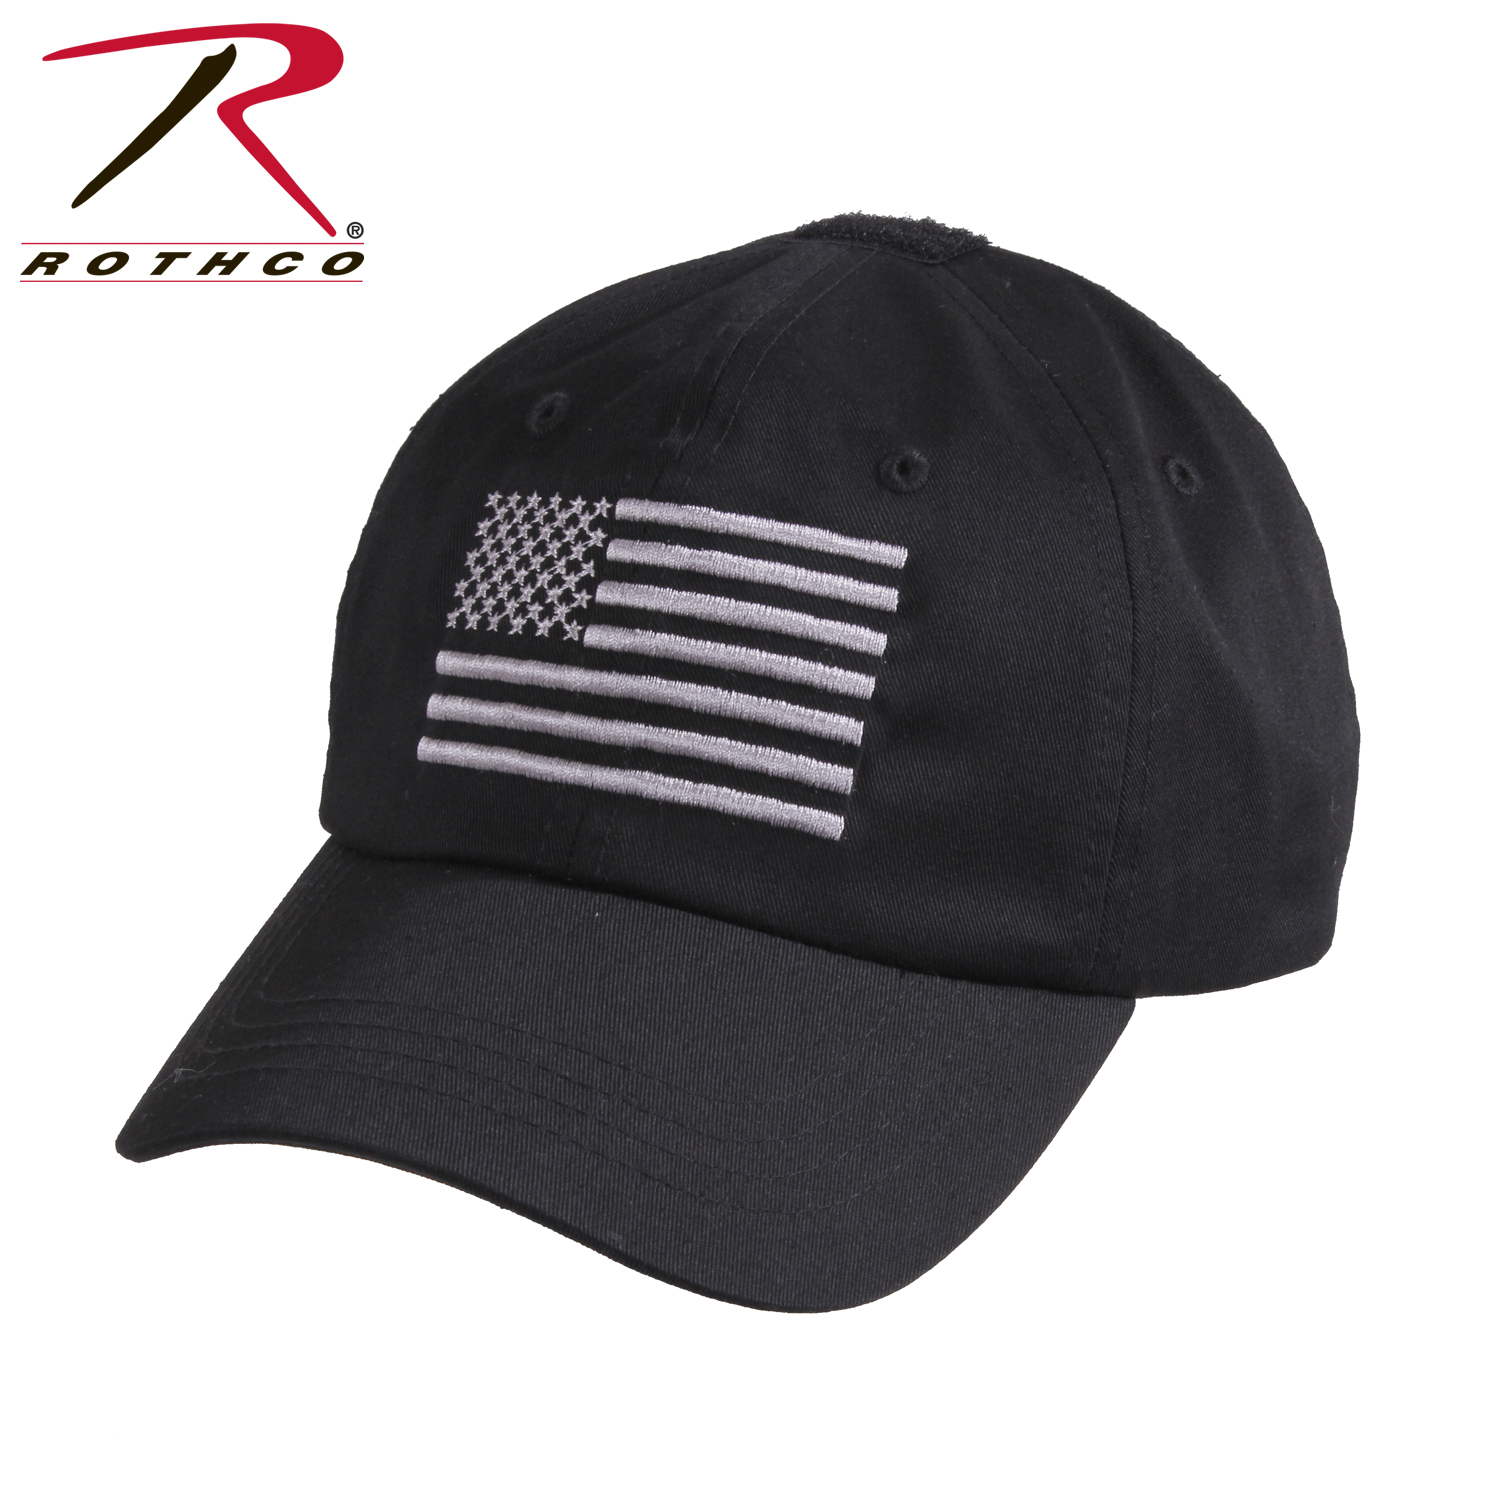 d8486808b12 Rothco Tactical Operator Cap With US Flag